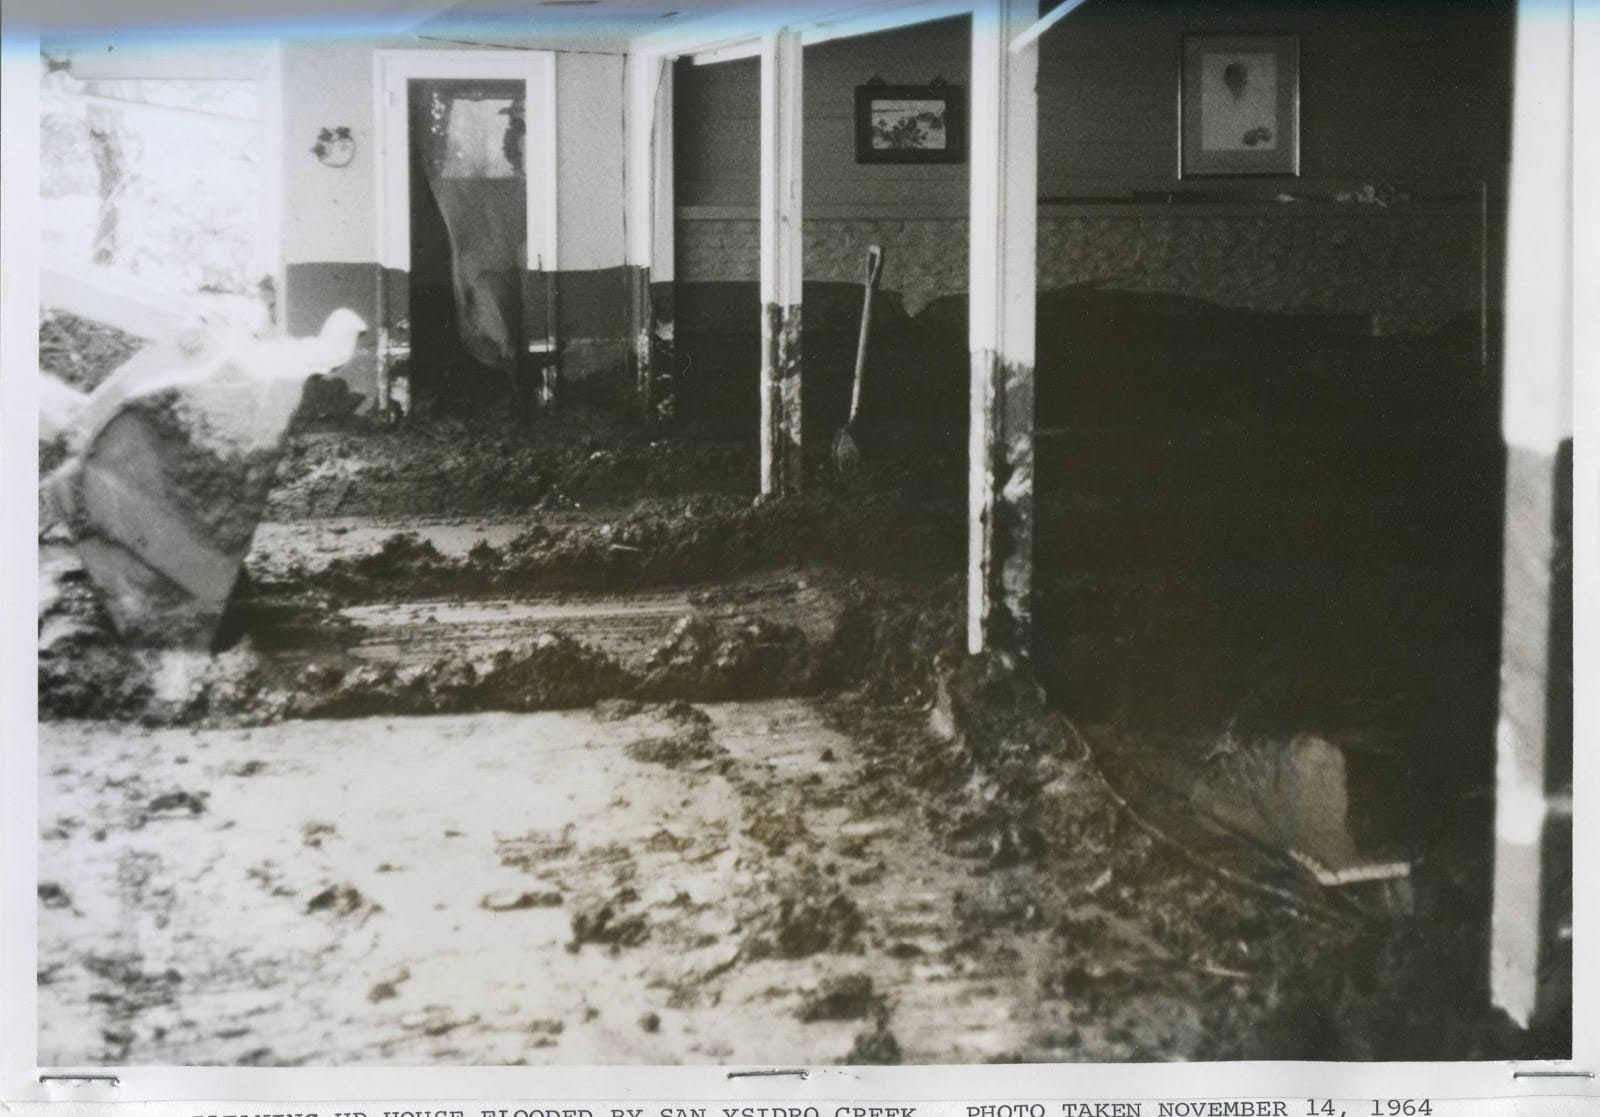 Inside a home near San Ysidro Creek, November 14, 1964. Note distinct mud line on far wall.